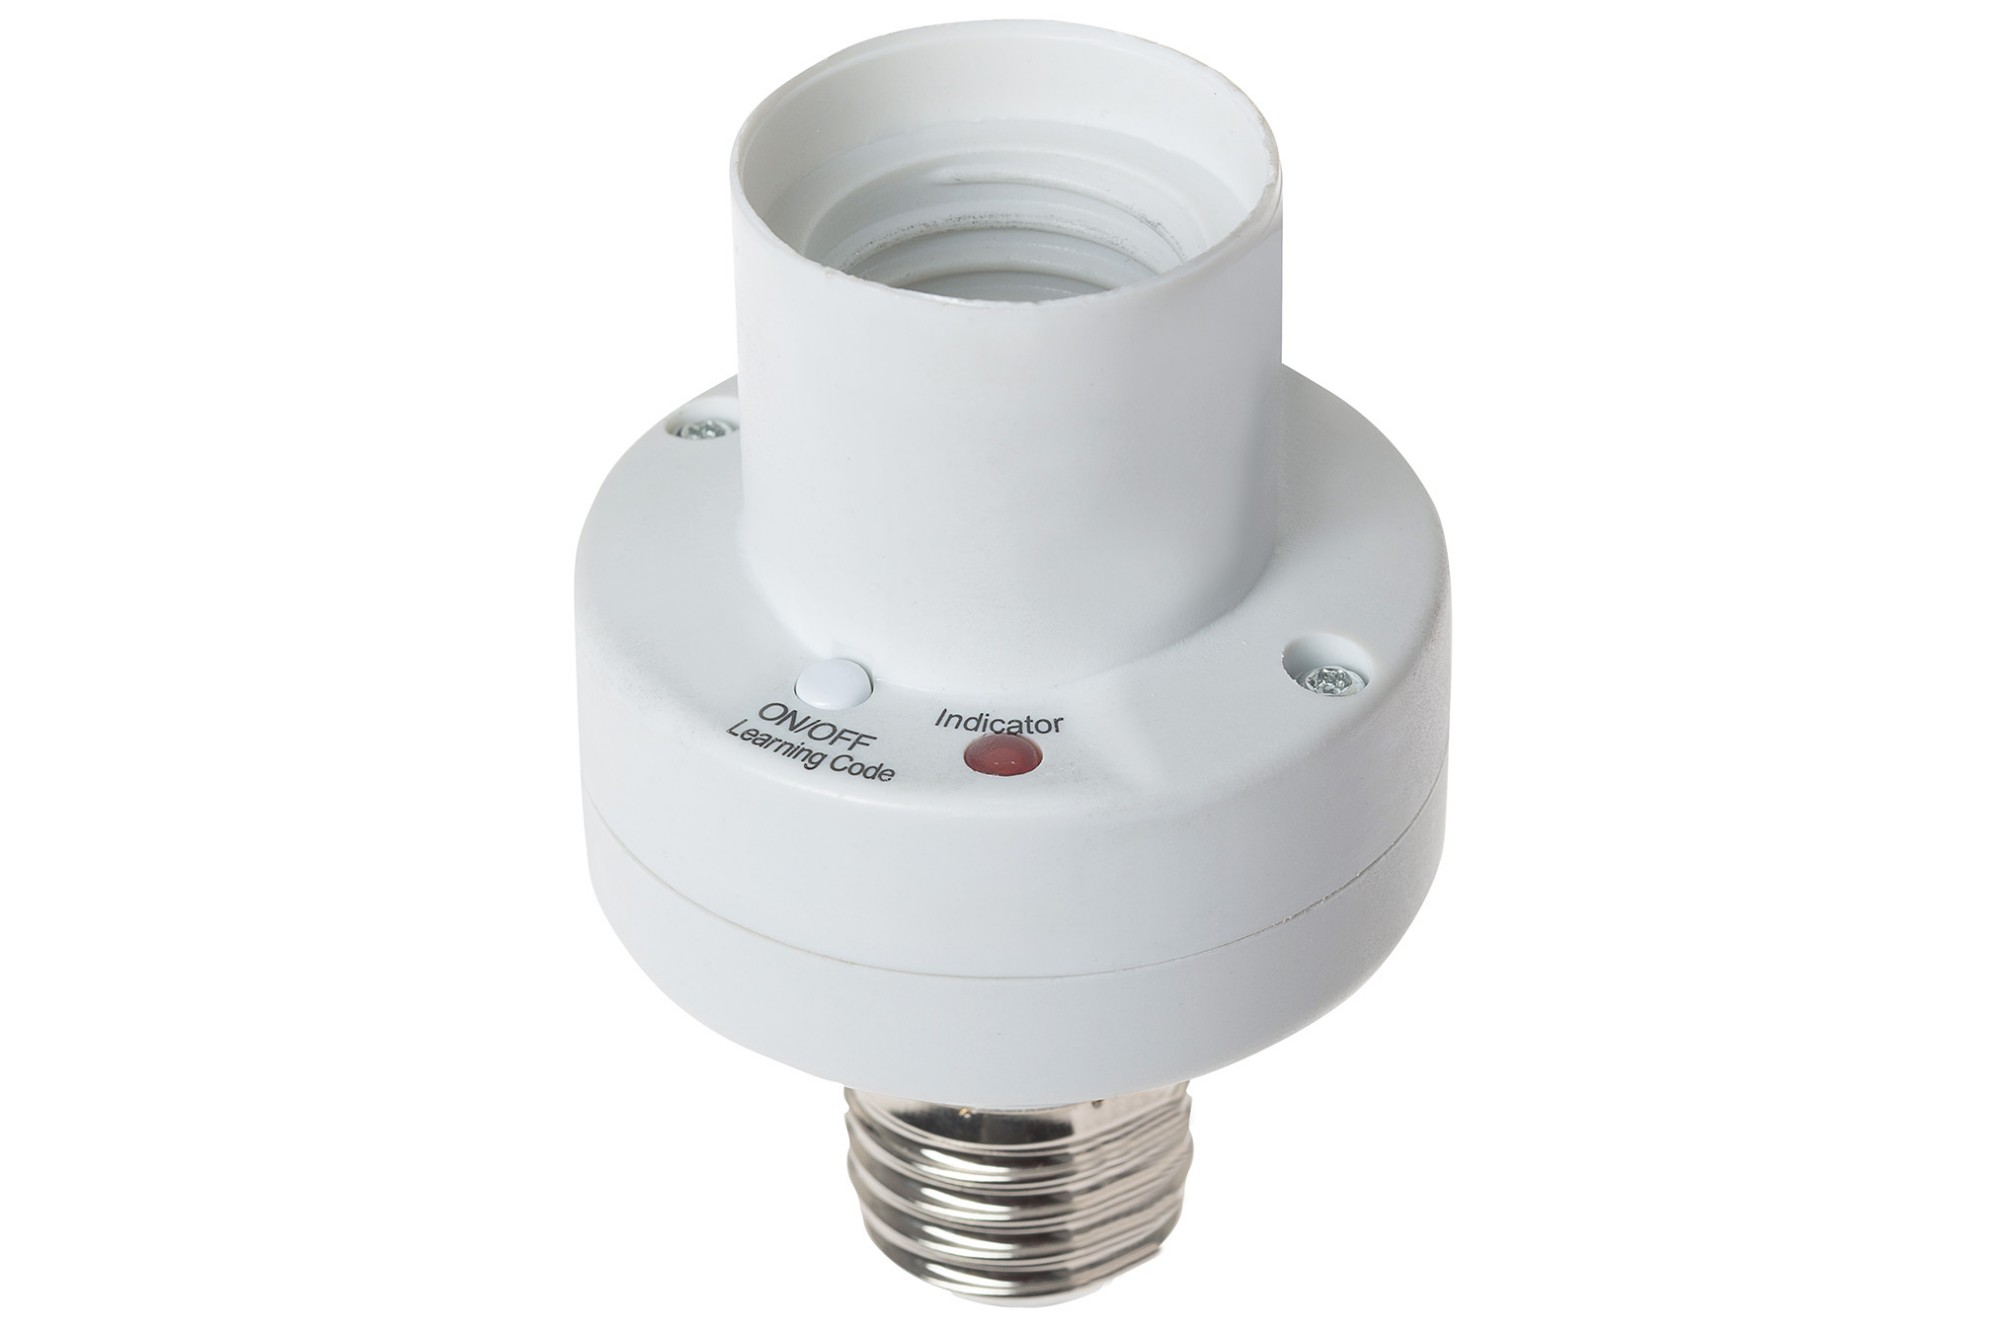 MAPLIN ORB RF Remote Controlled Mains Light Bulb Socket with Remote Control